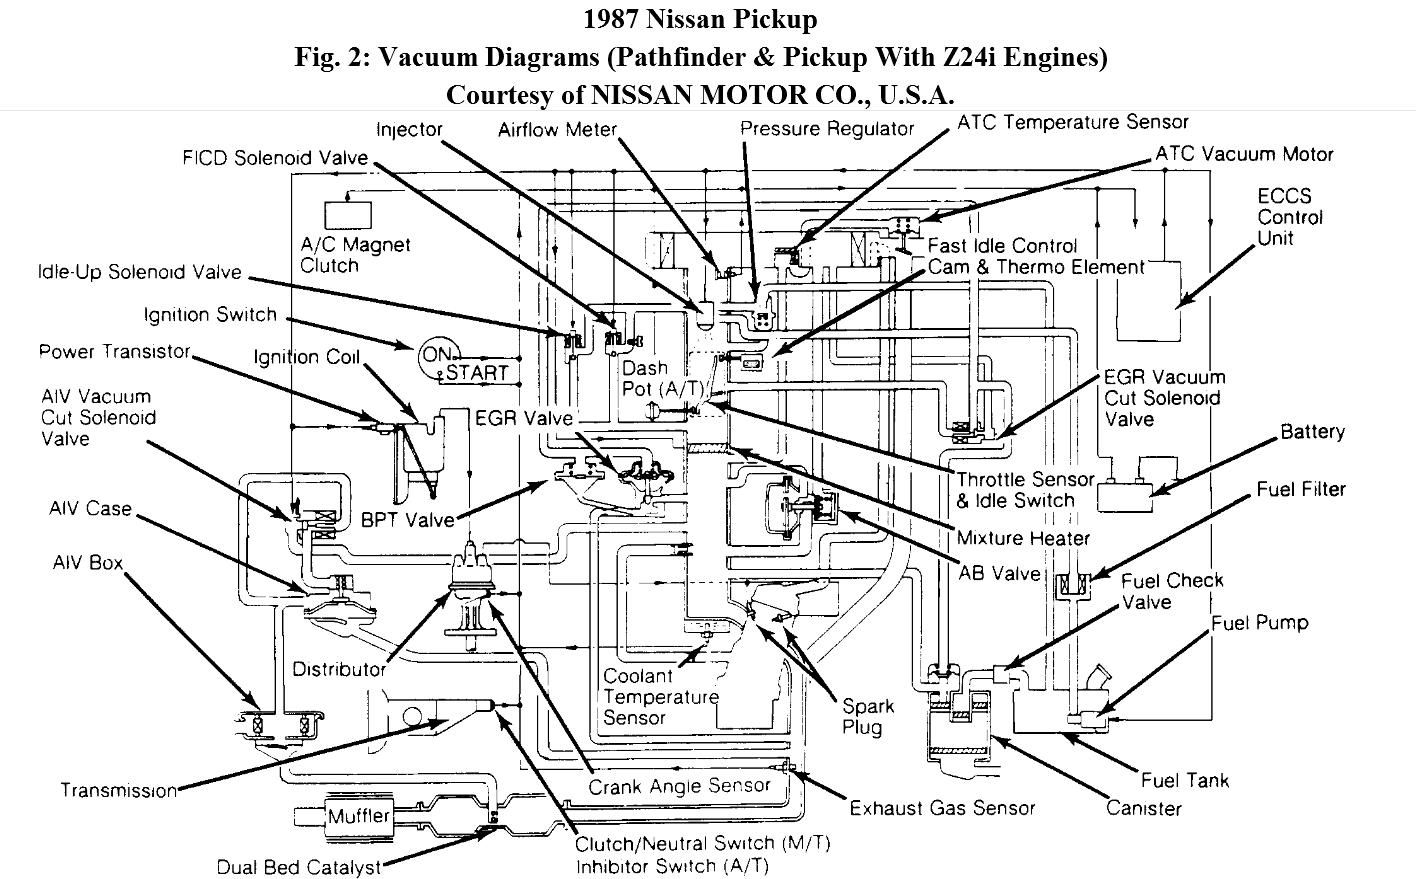 Original on 92 Nissan Sentra Wiring Diagram